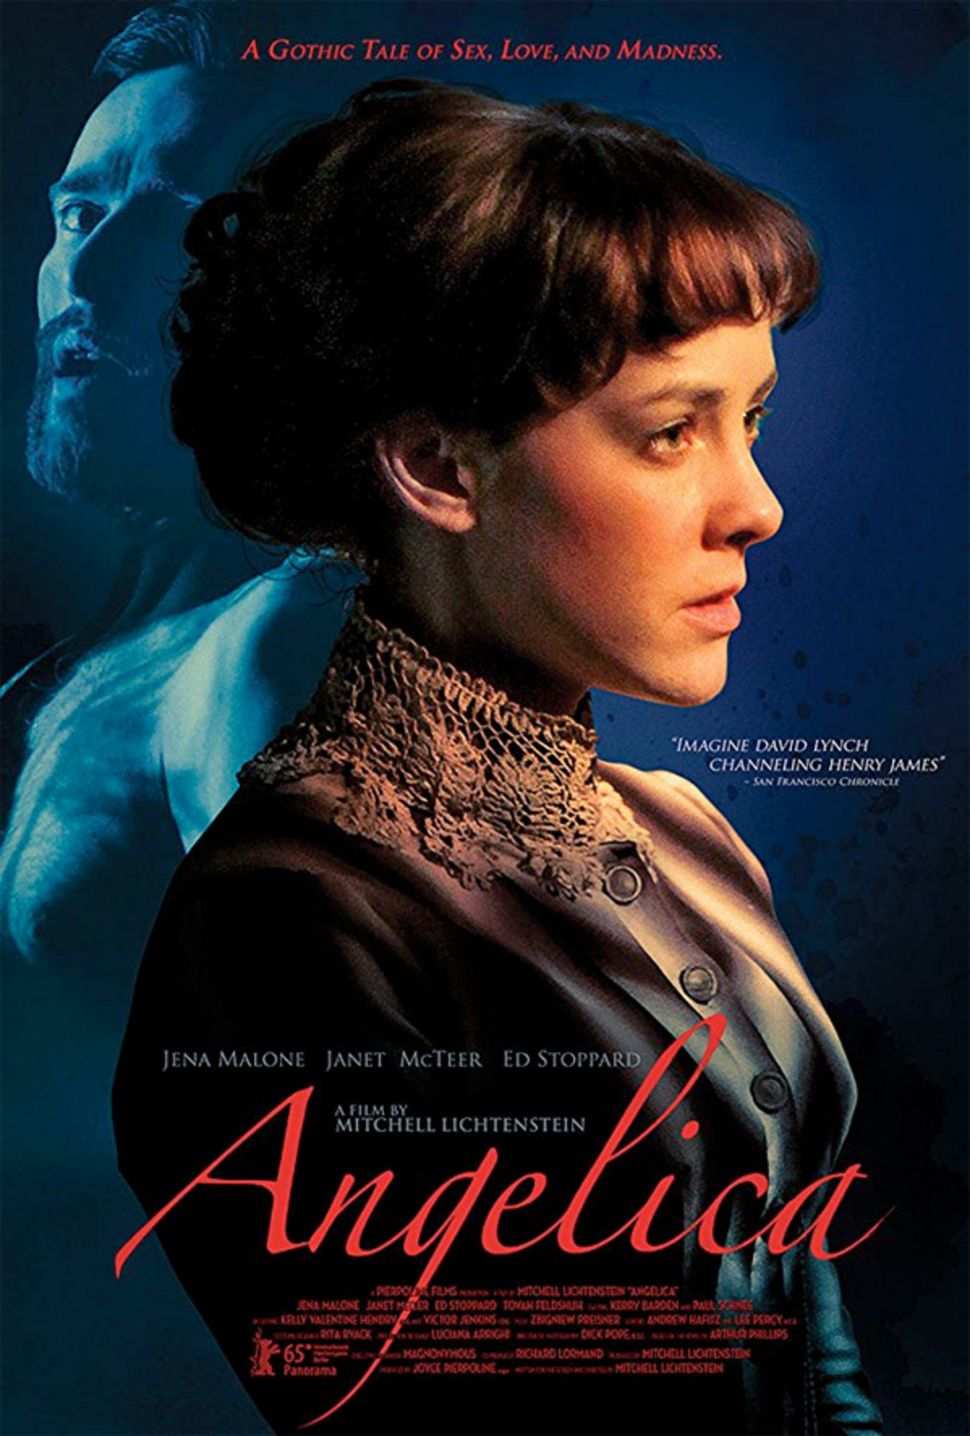 Angelica - Horror Drama - film poster